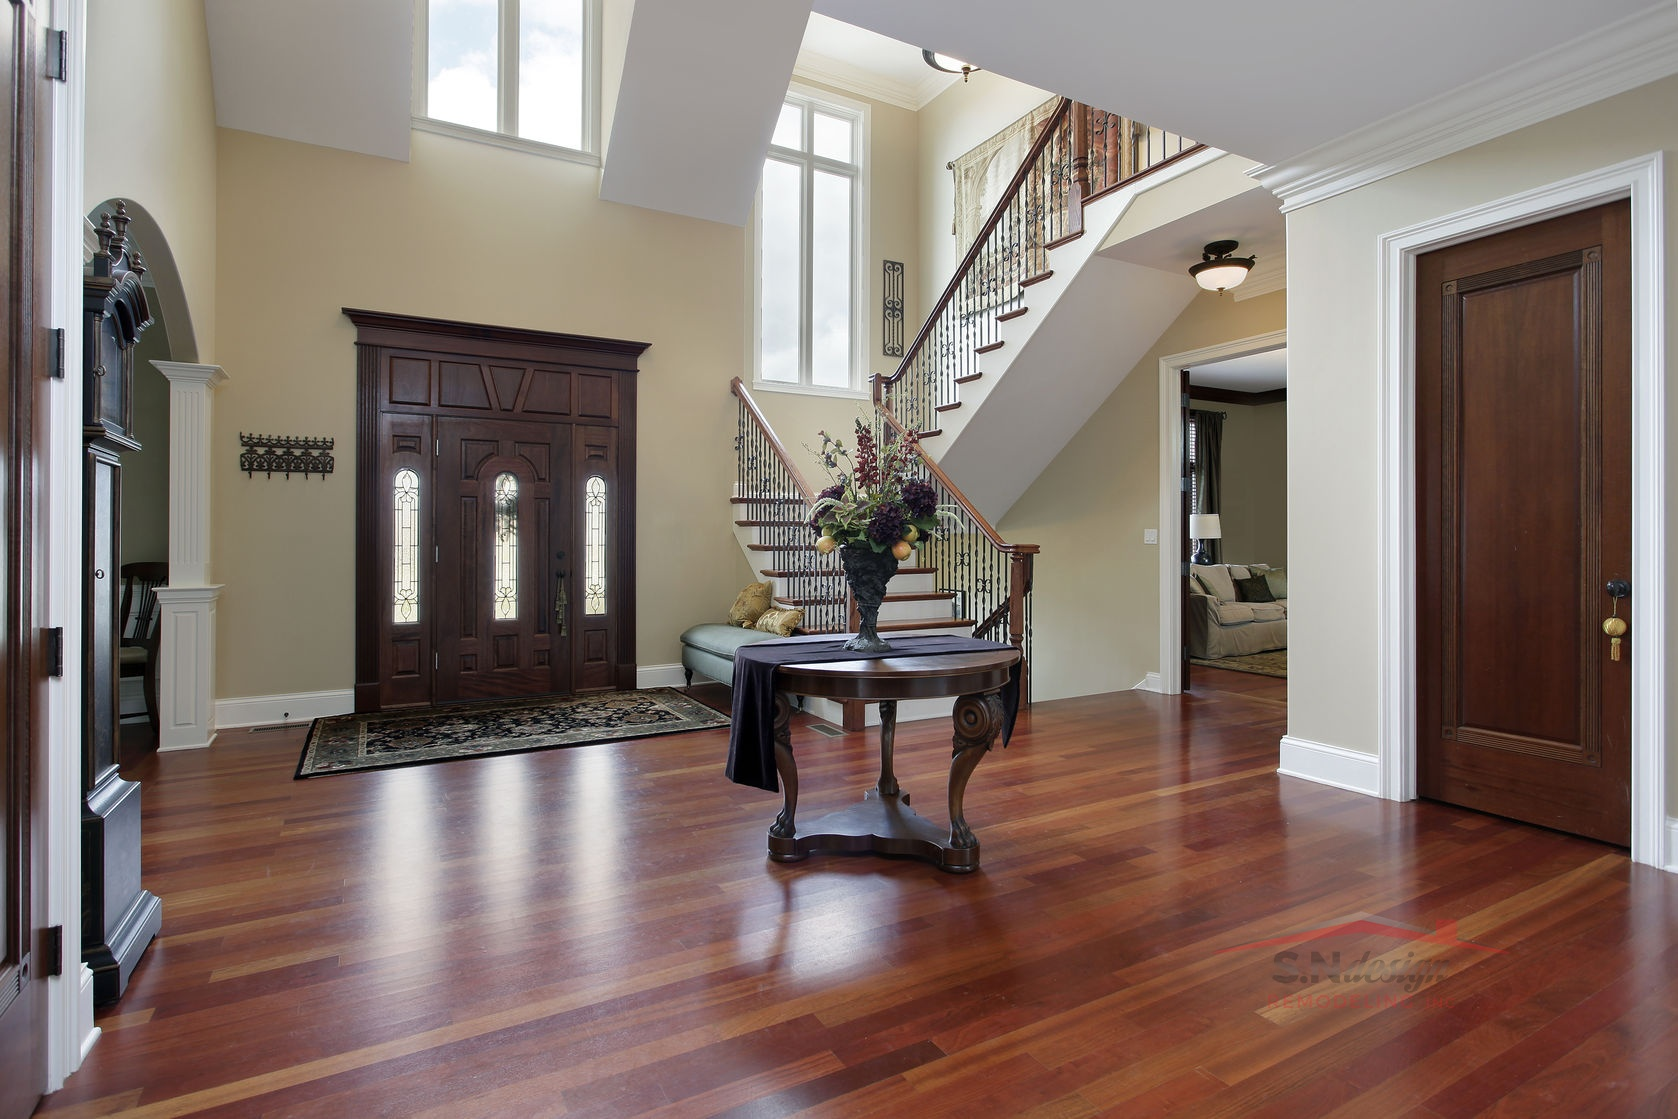 23889075 - foyer in luxury home with cherry wood flooring